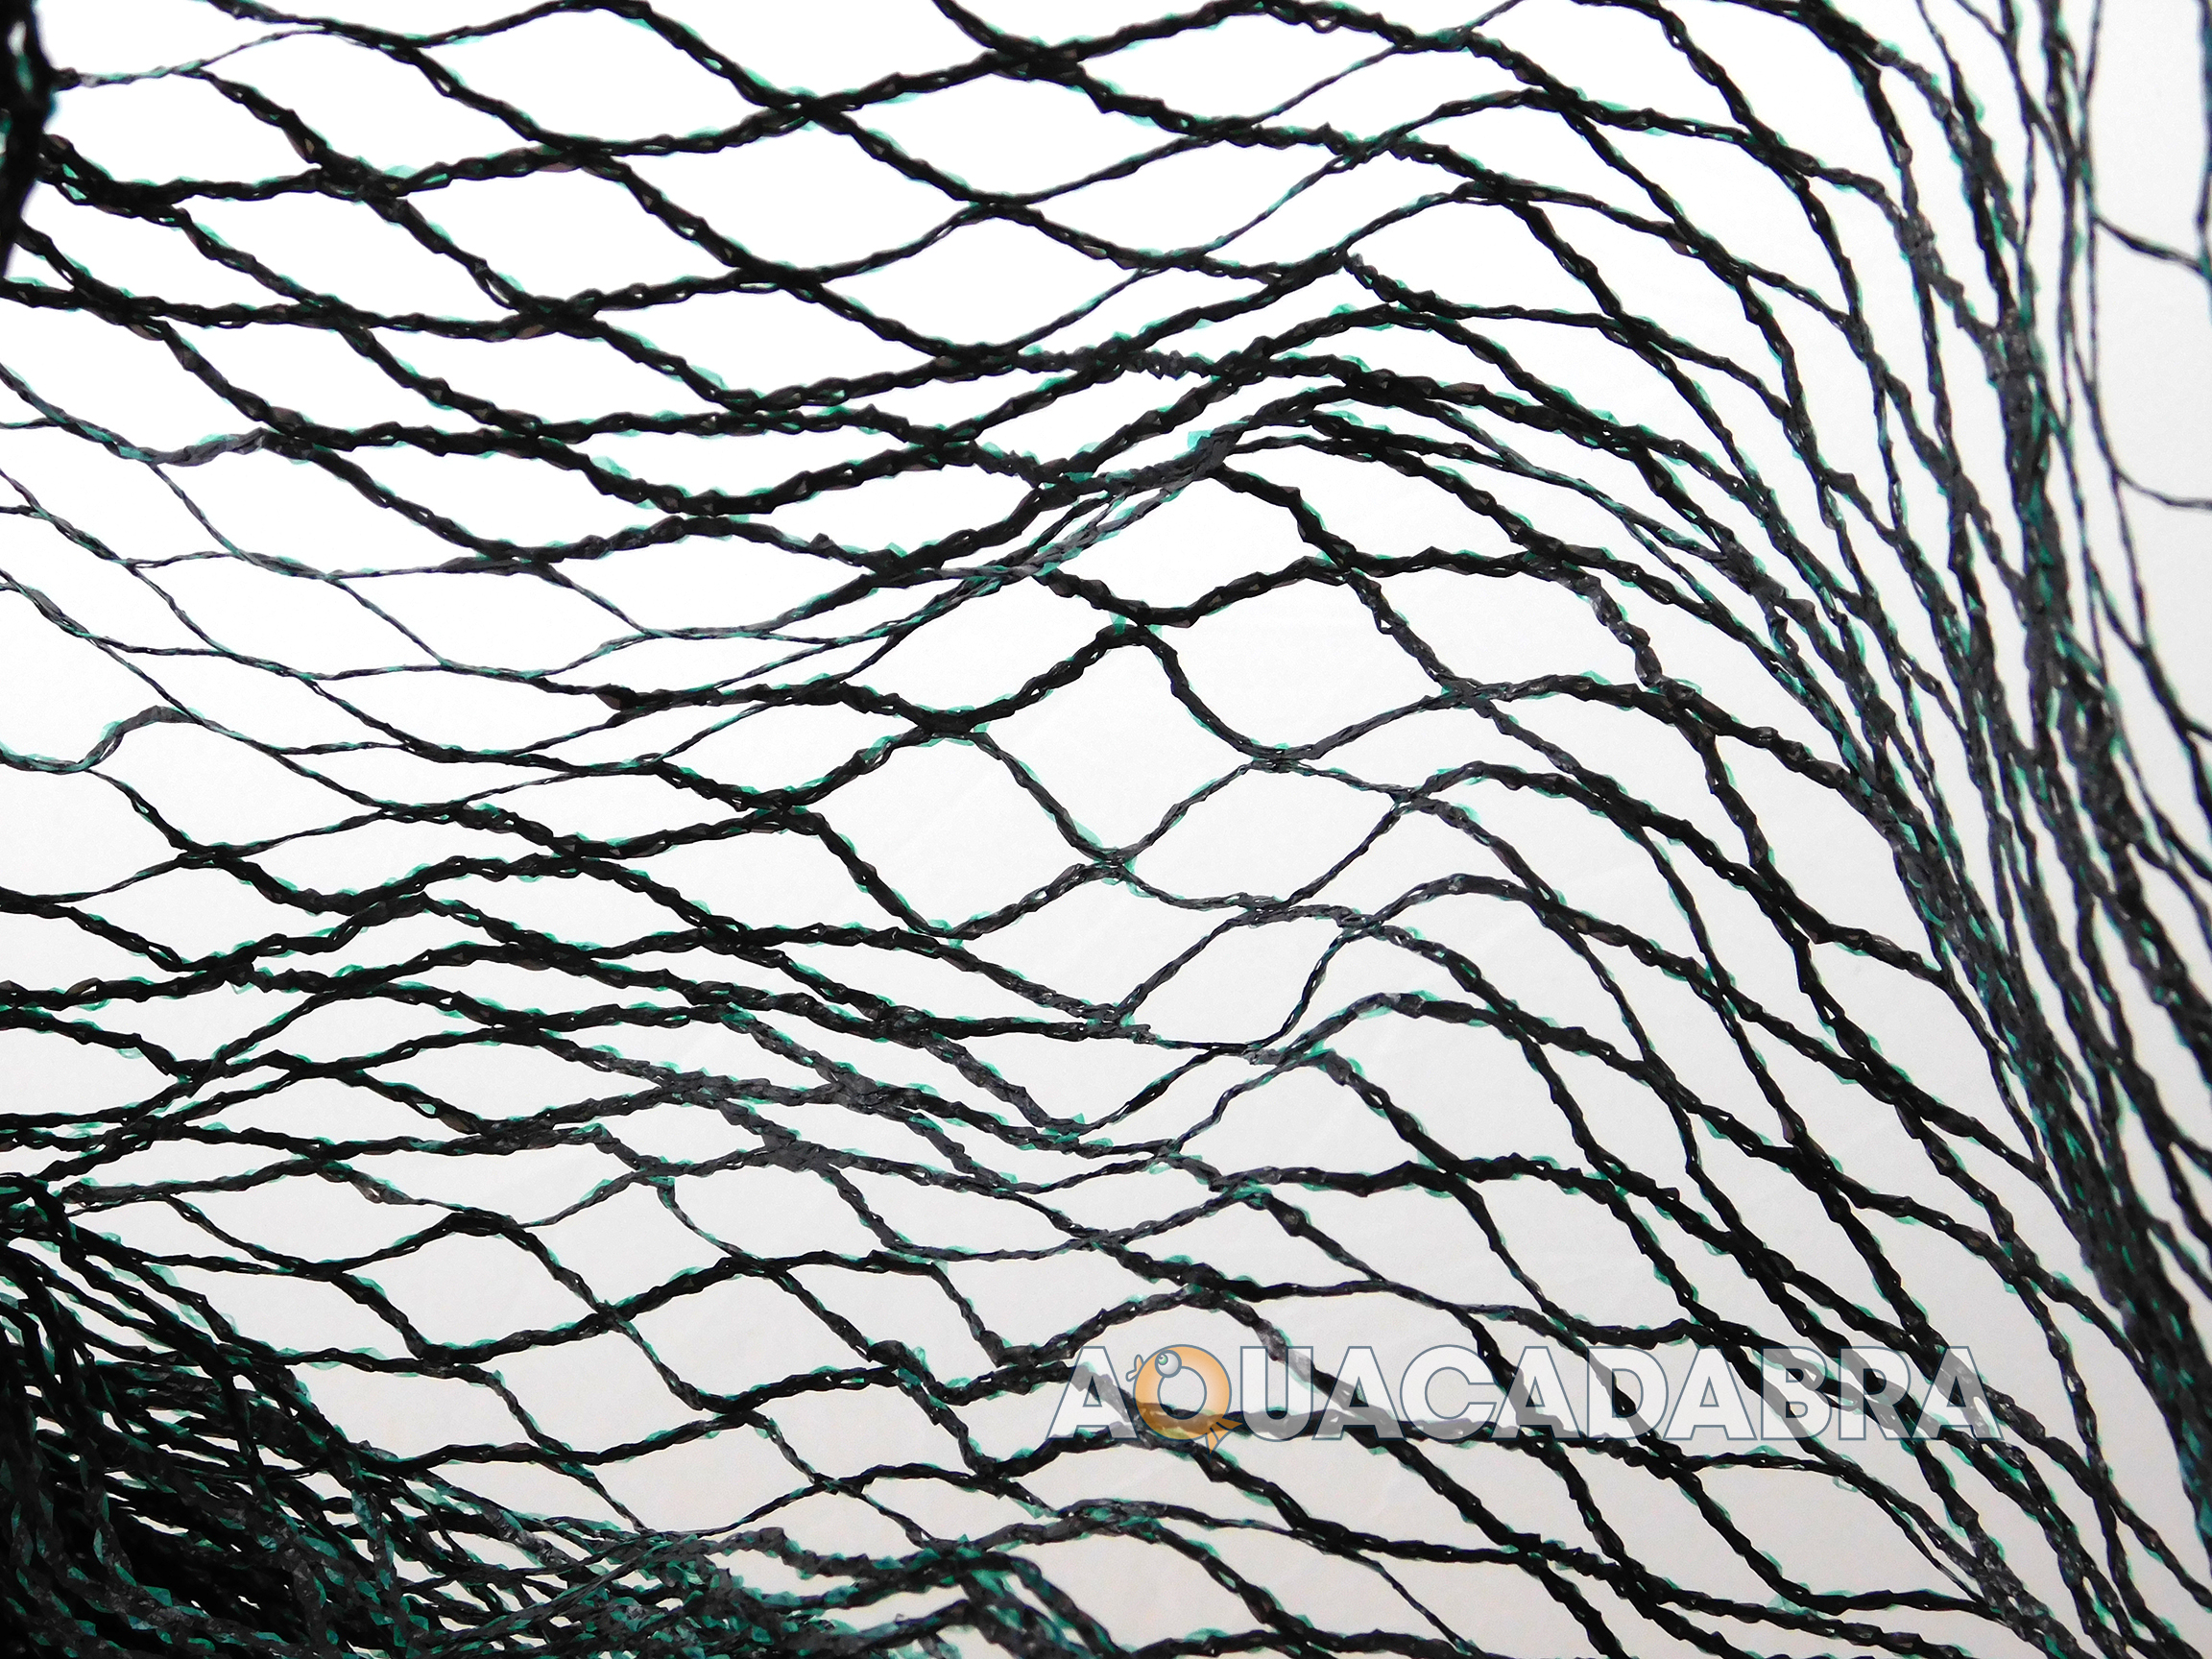 Pond cover net pool netting heron cat fox leaves protector for Fish pond nets